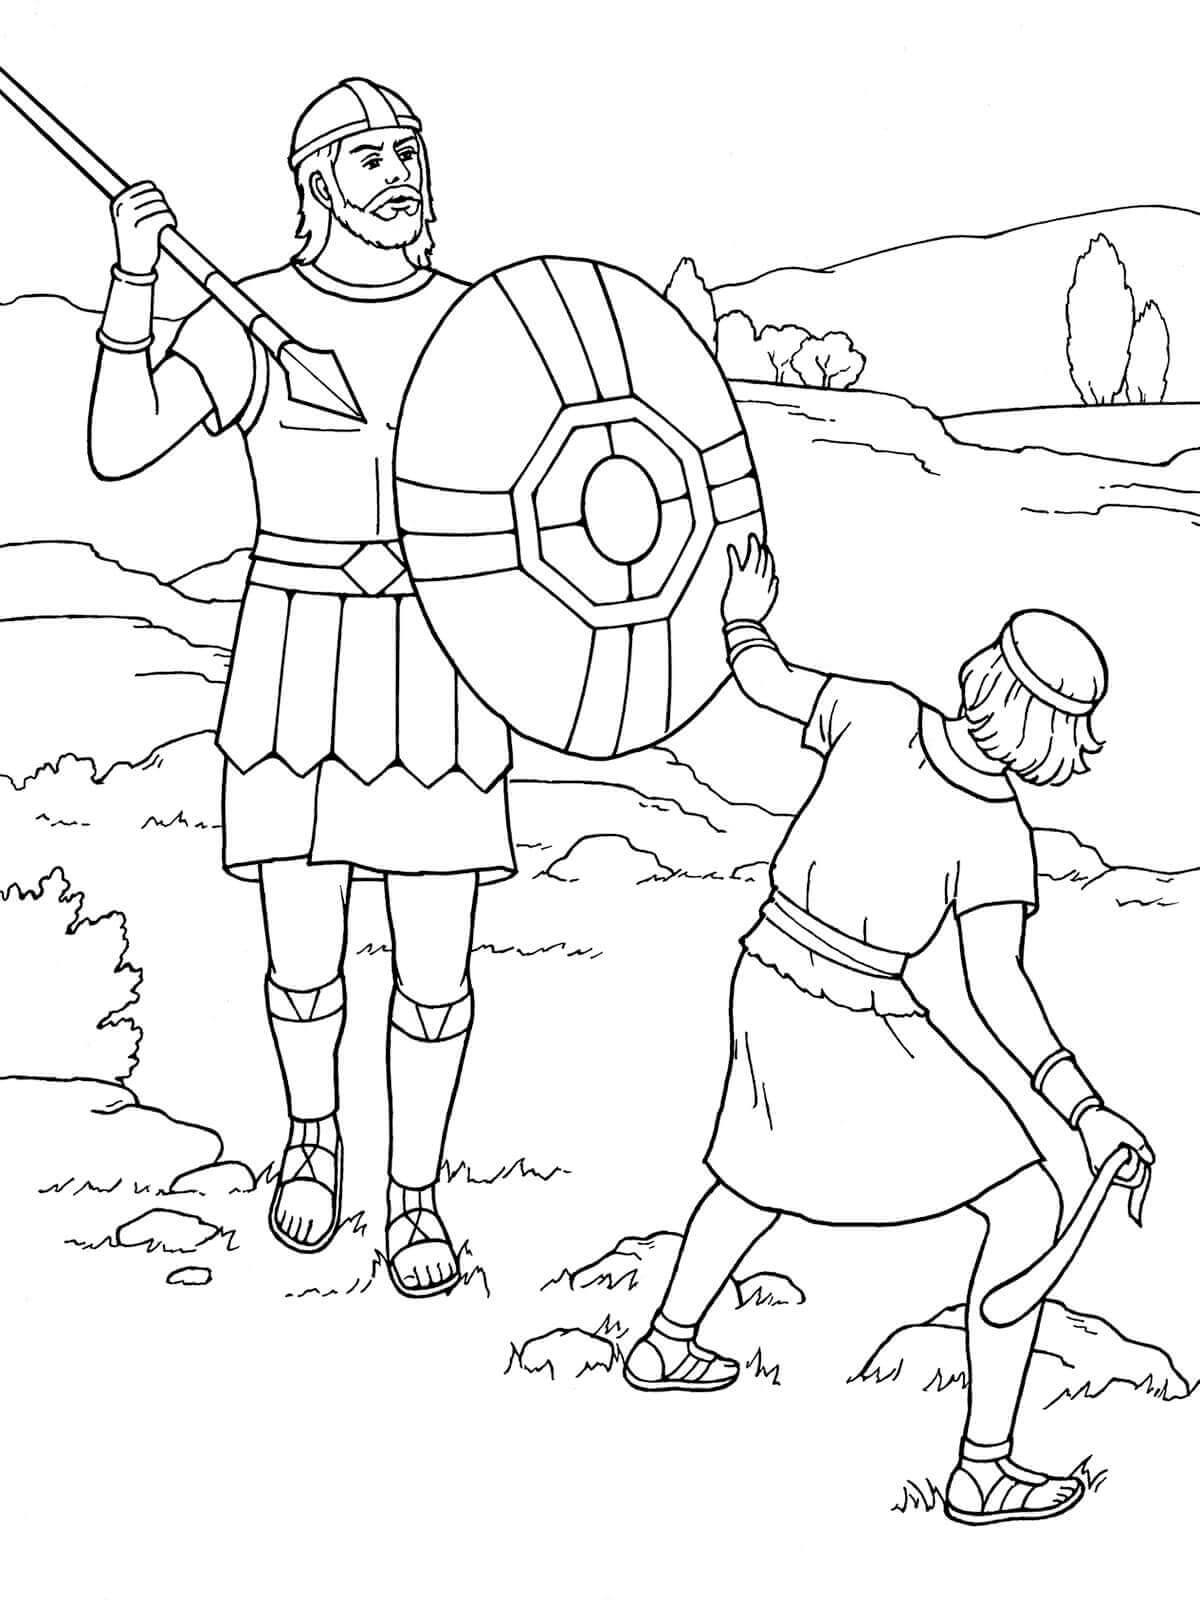 free sunday school coloring pages sunday school free printable coloring pages coloring home school sunday free coloring pages